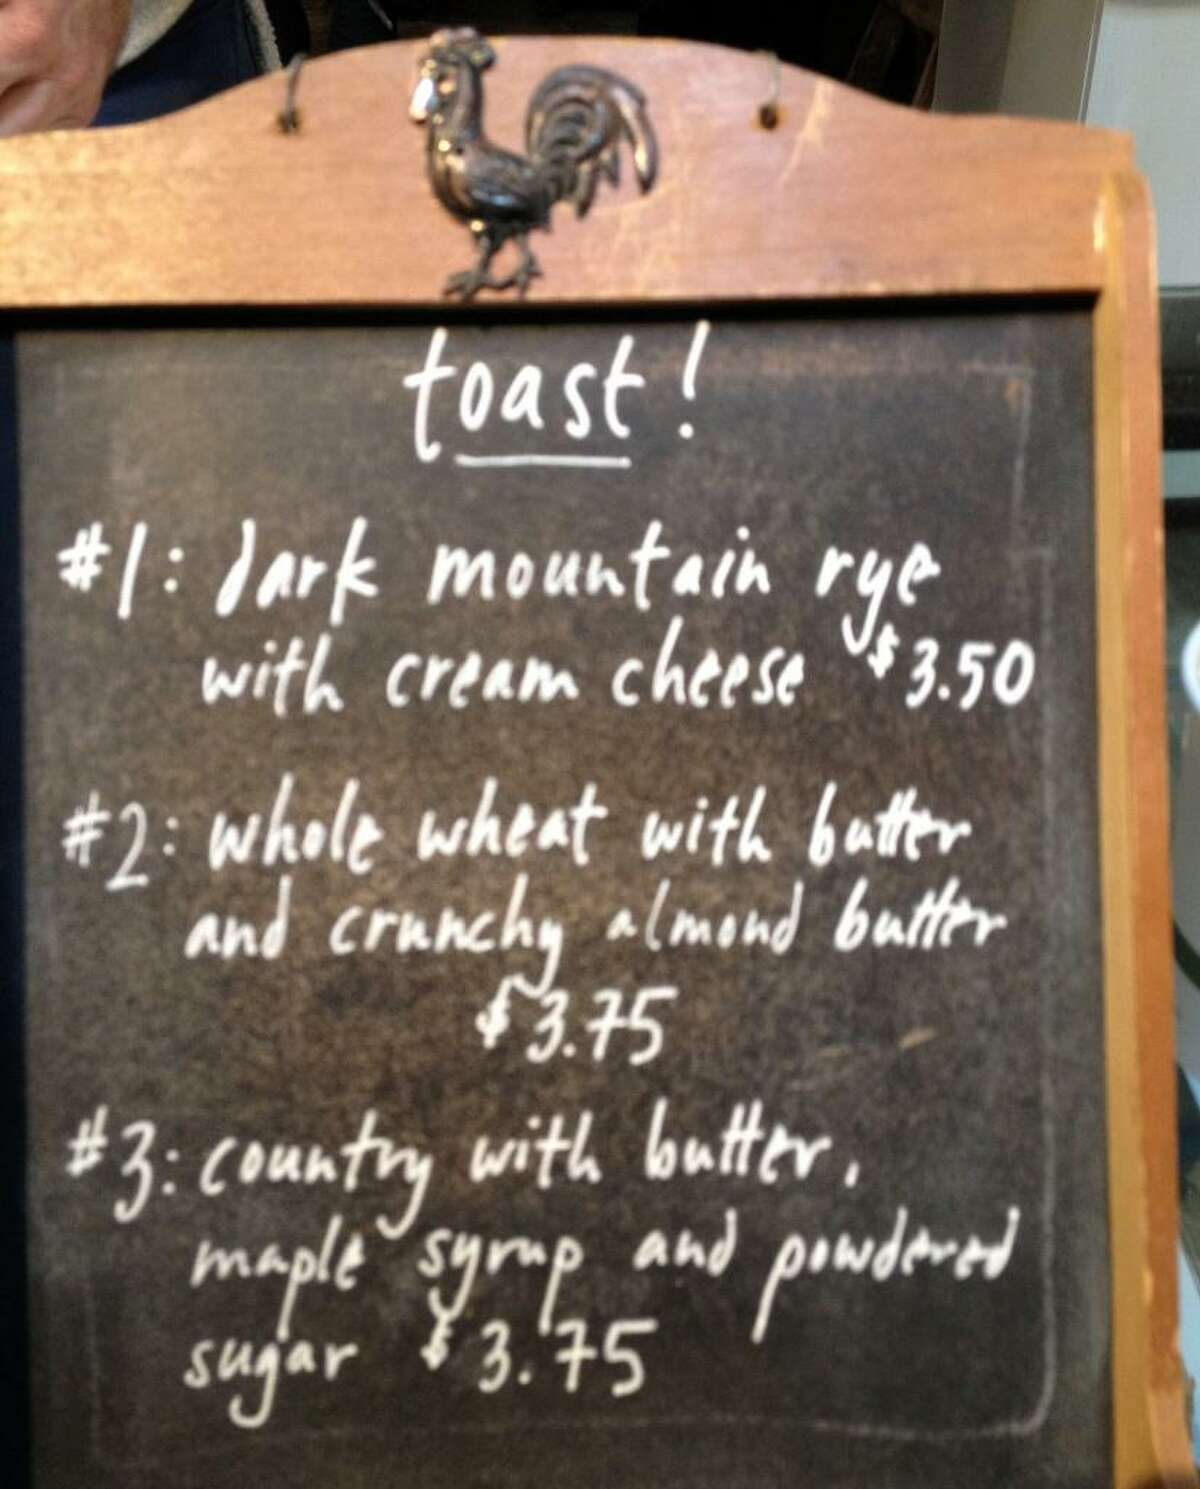 The Mill offers several freshly baked breads from partner Josey Baker, available as toast and/or as full loaves.